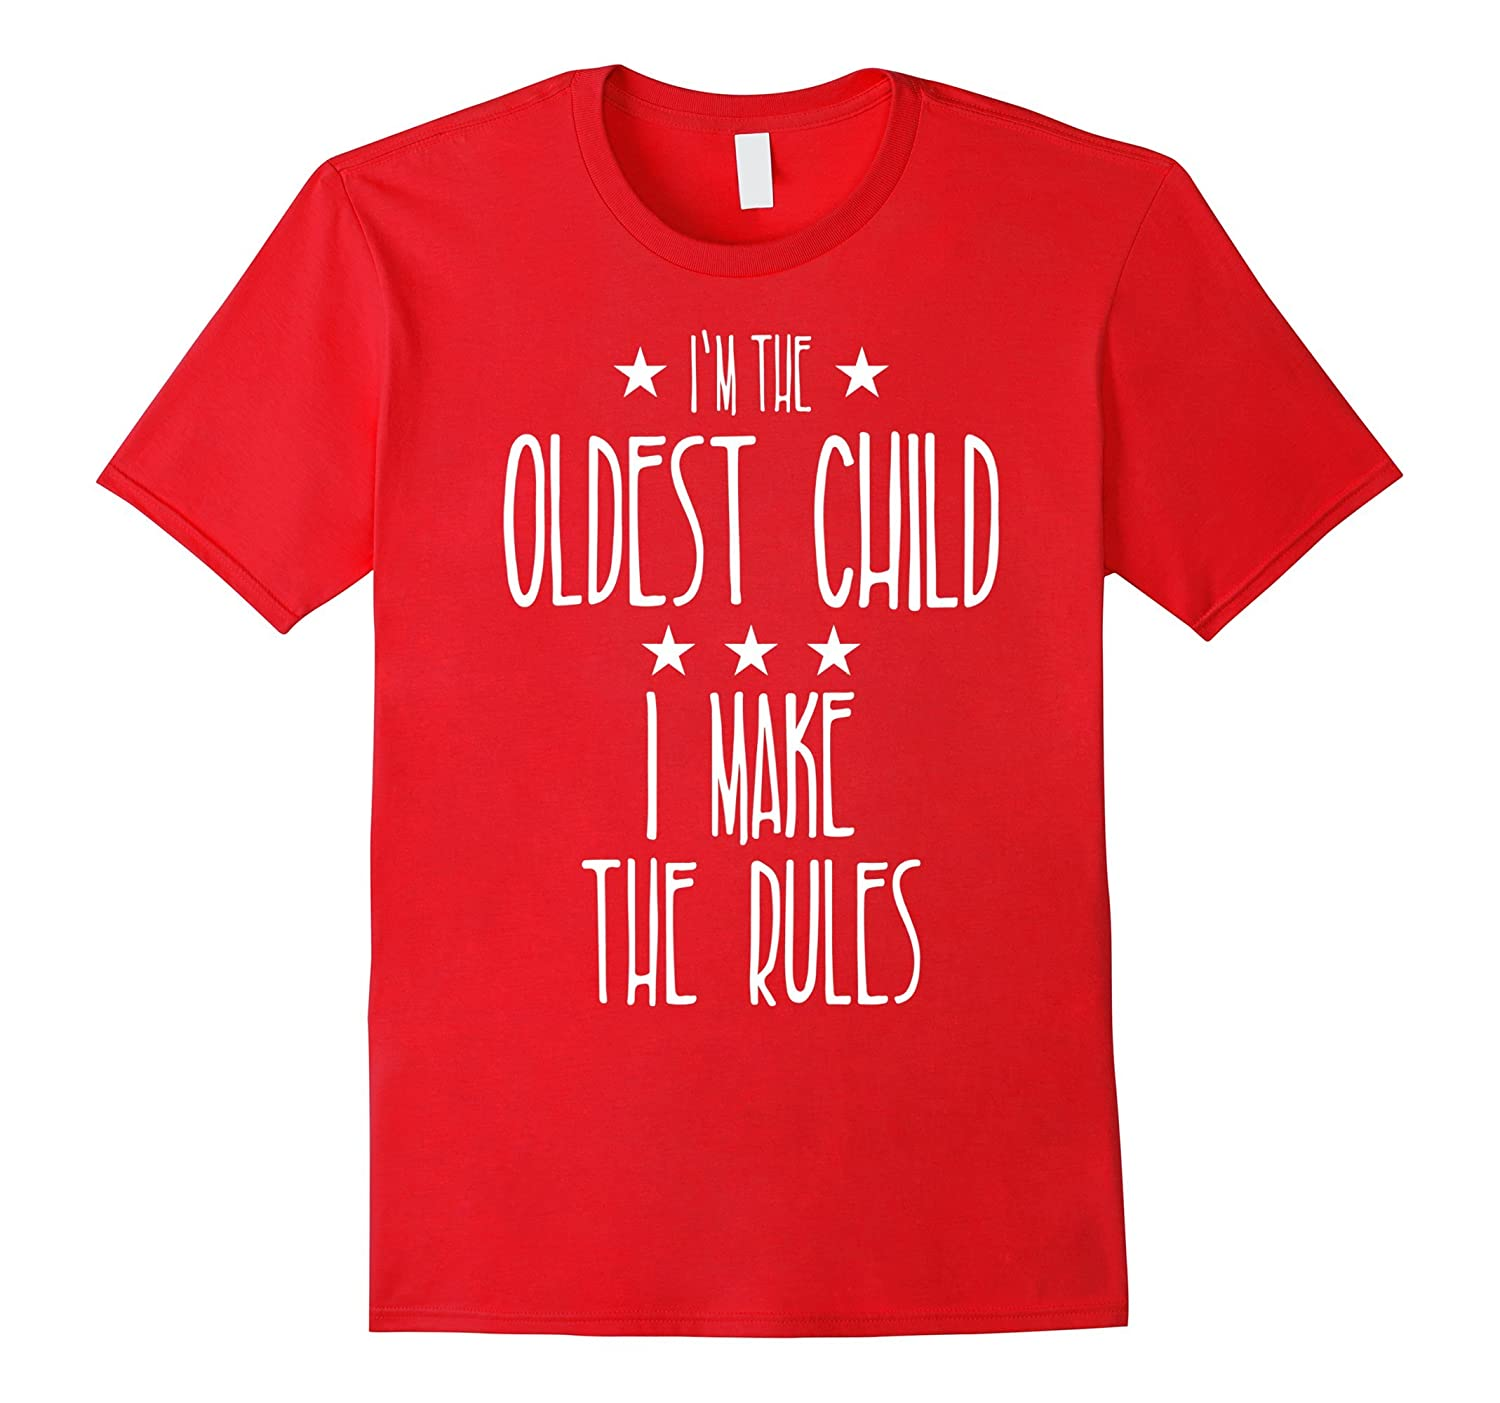 d424ea6d7 Oldest Child – Why We Have Rules Funny Shirt-CL – Colamaga